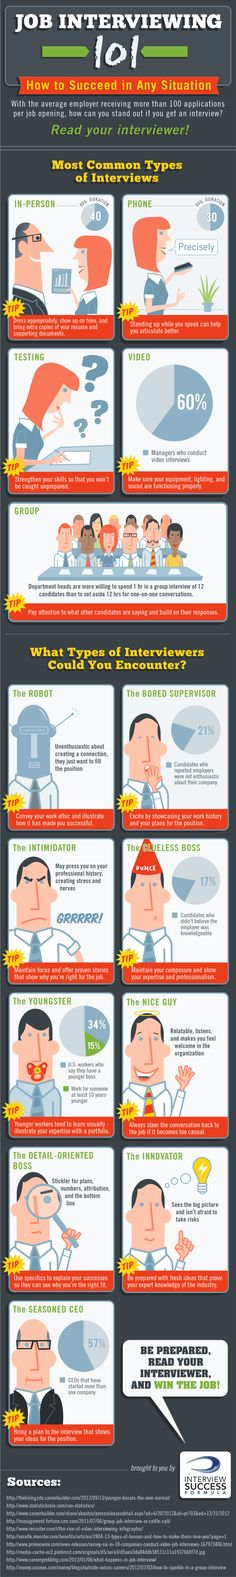 Job Interviewing Infographic